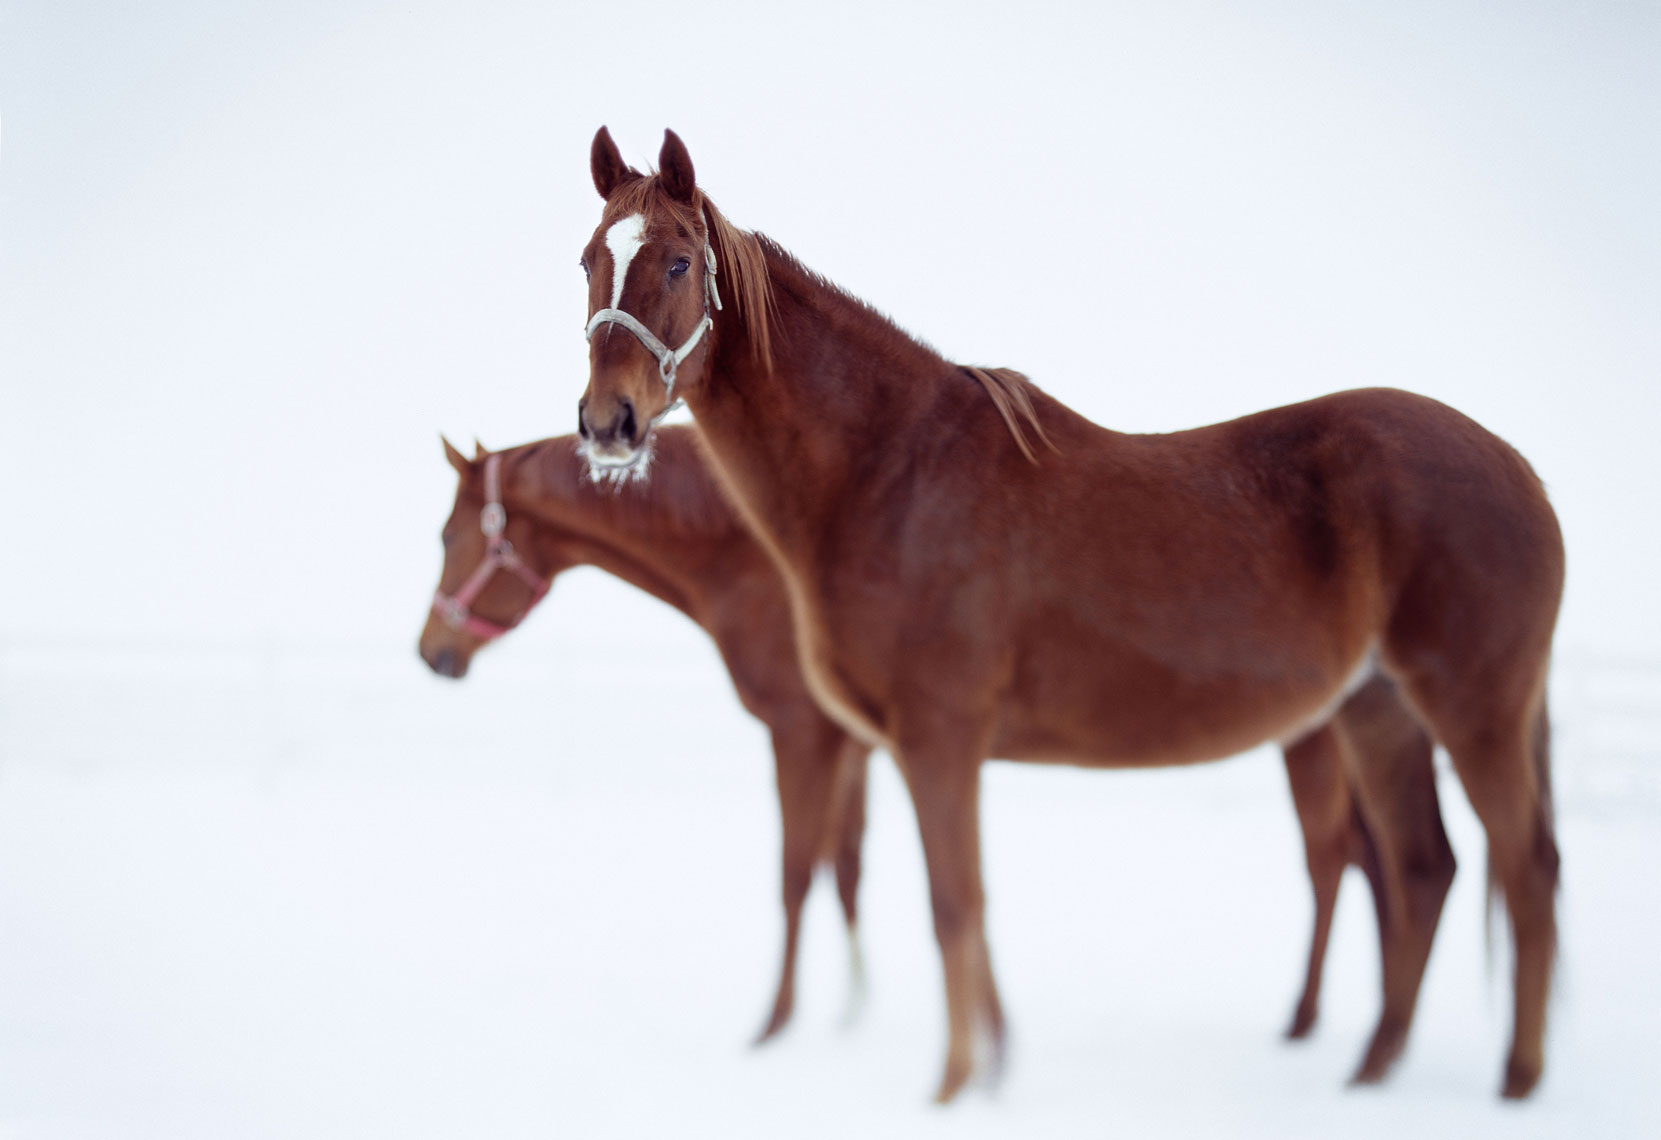 Environmental lifestyle portrait of horses in winter